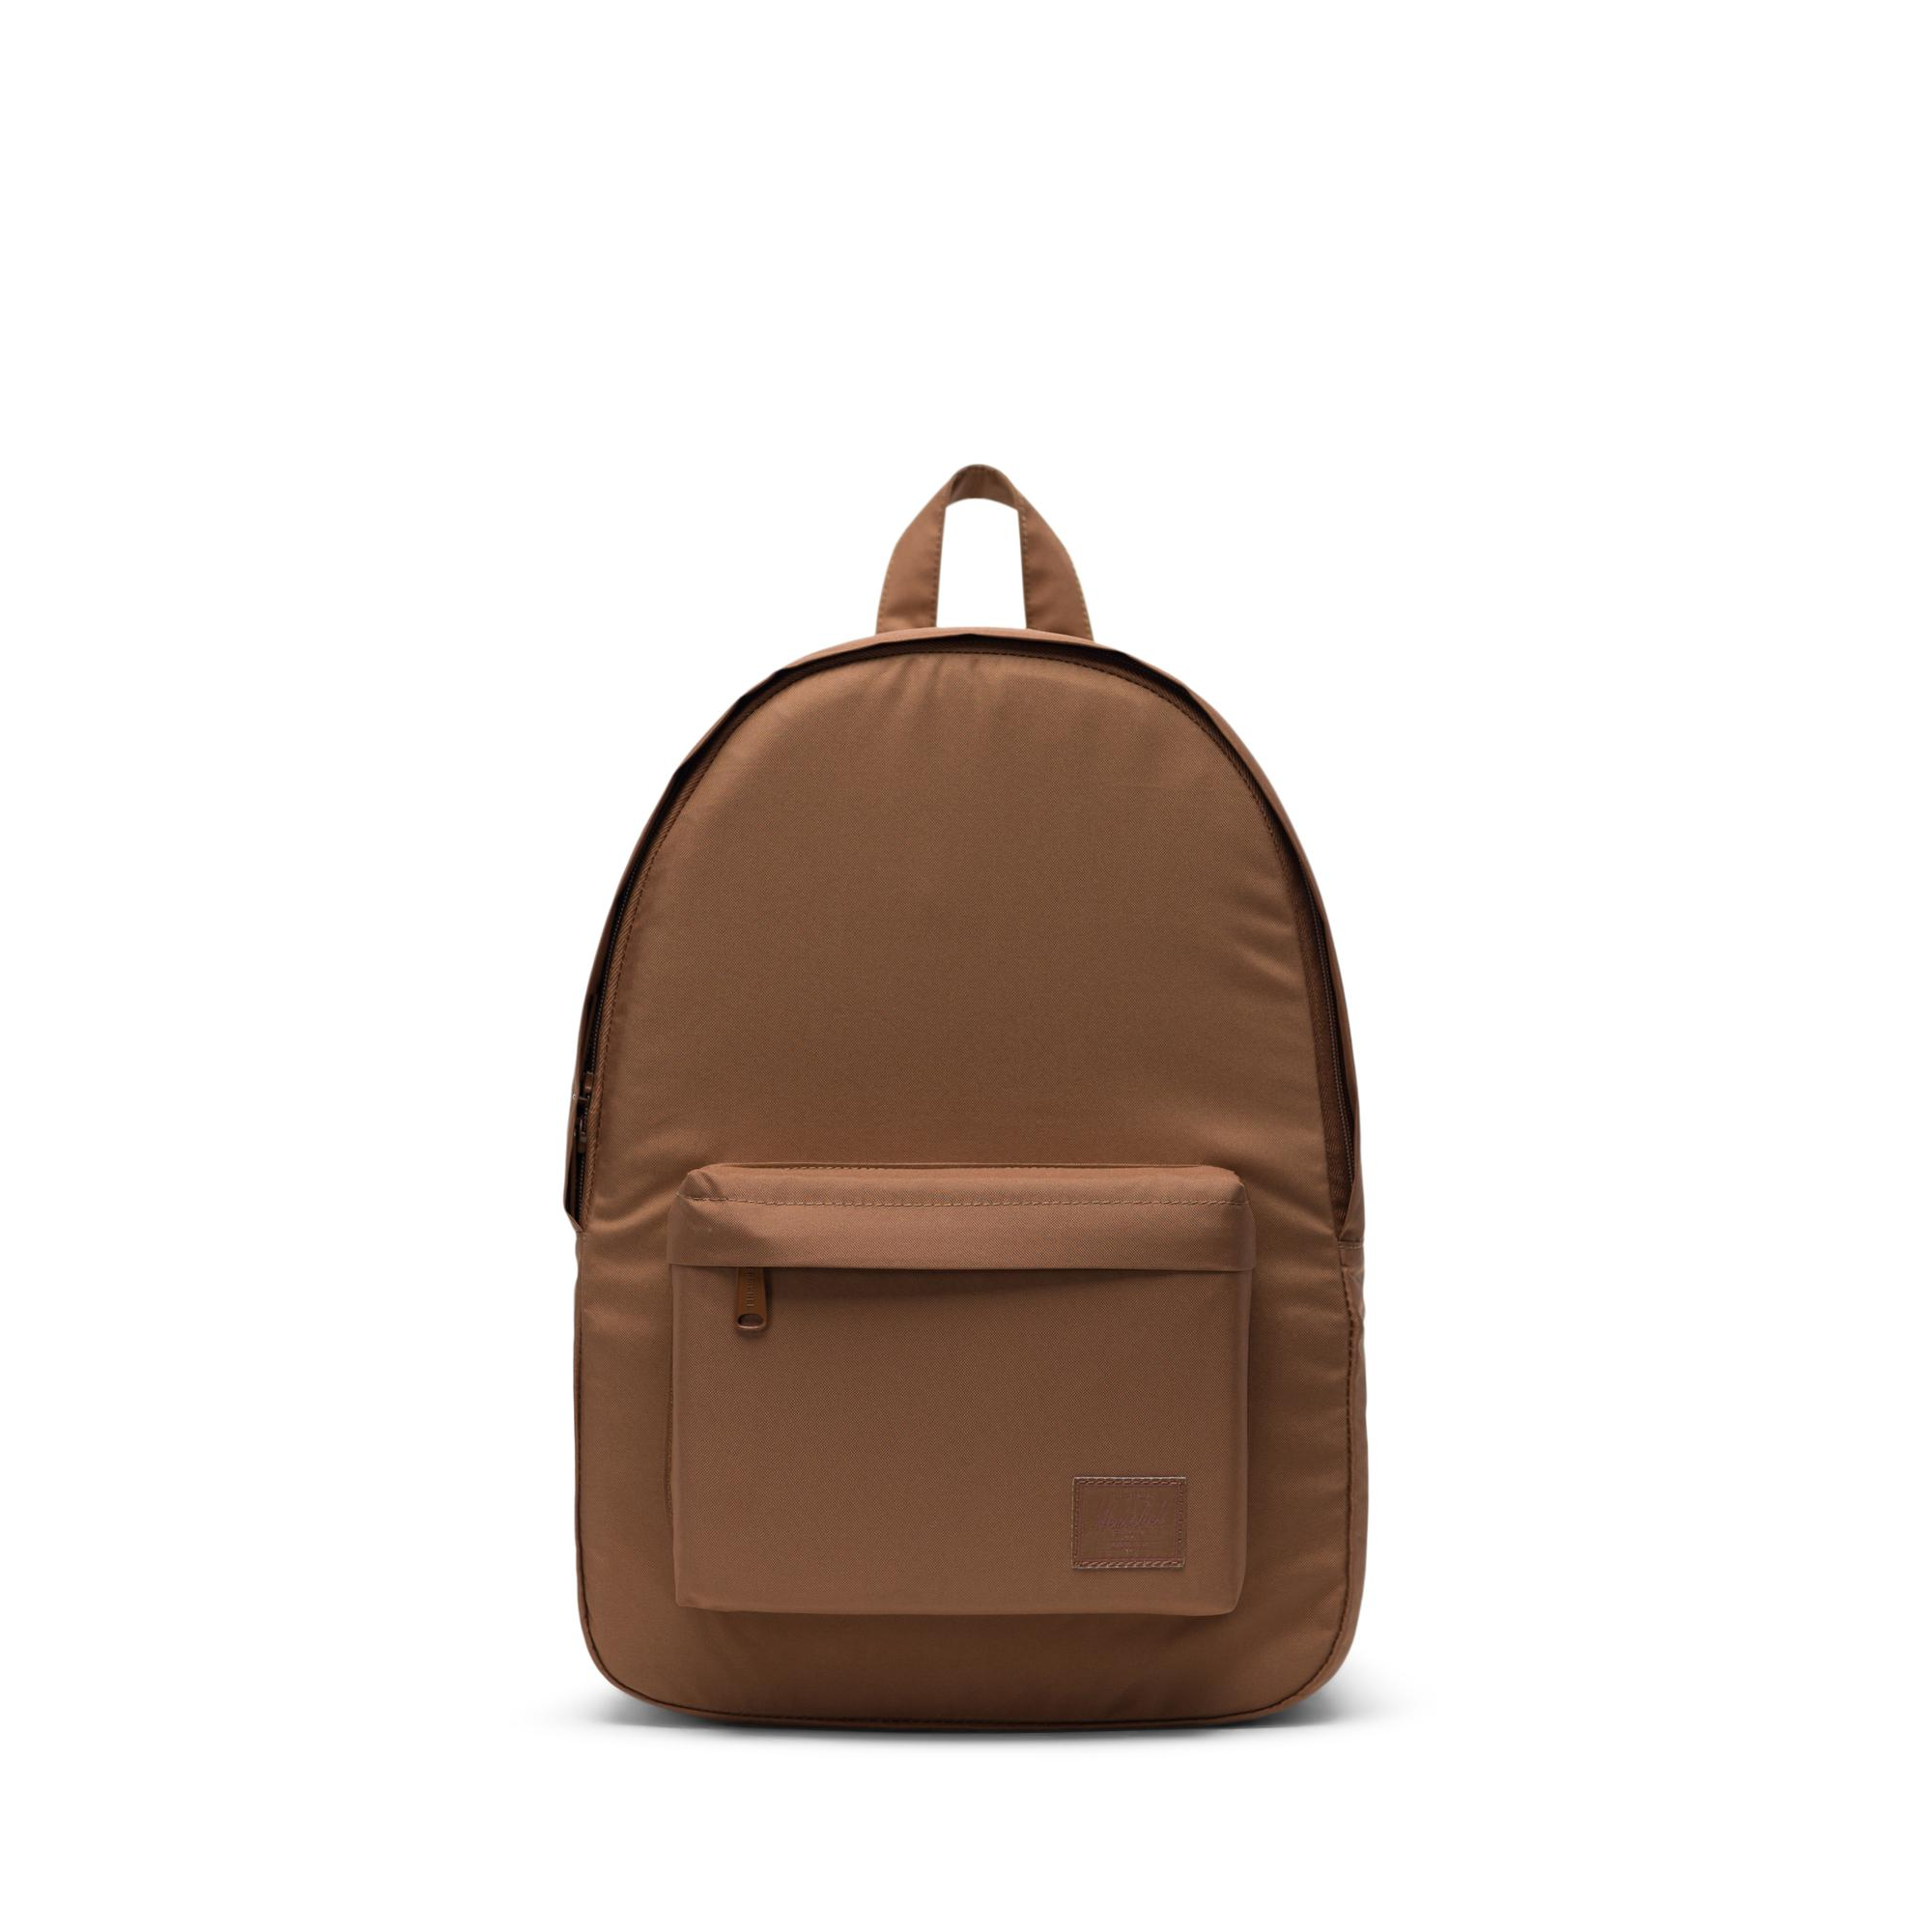 23b6e5758 Classic Backpack Mid-Volume Light | Herschel Supply Company